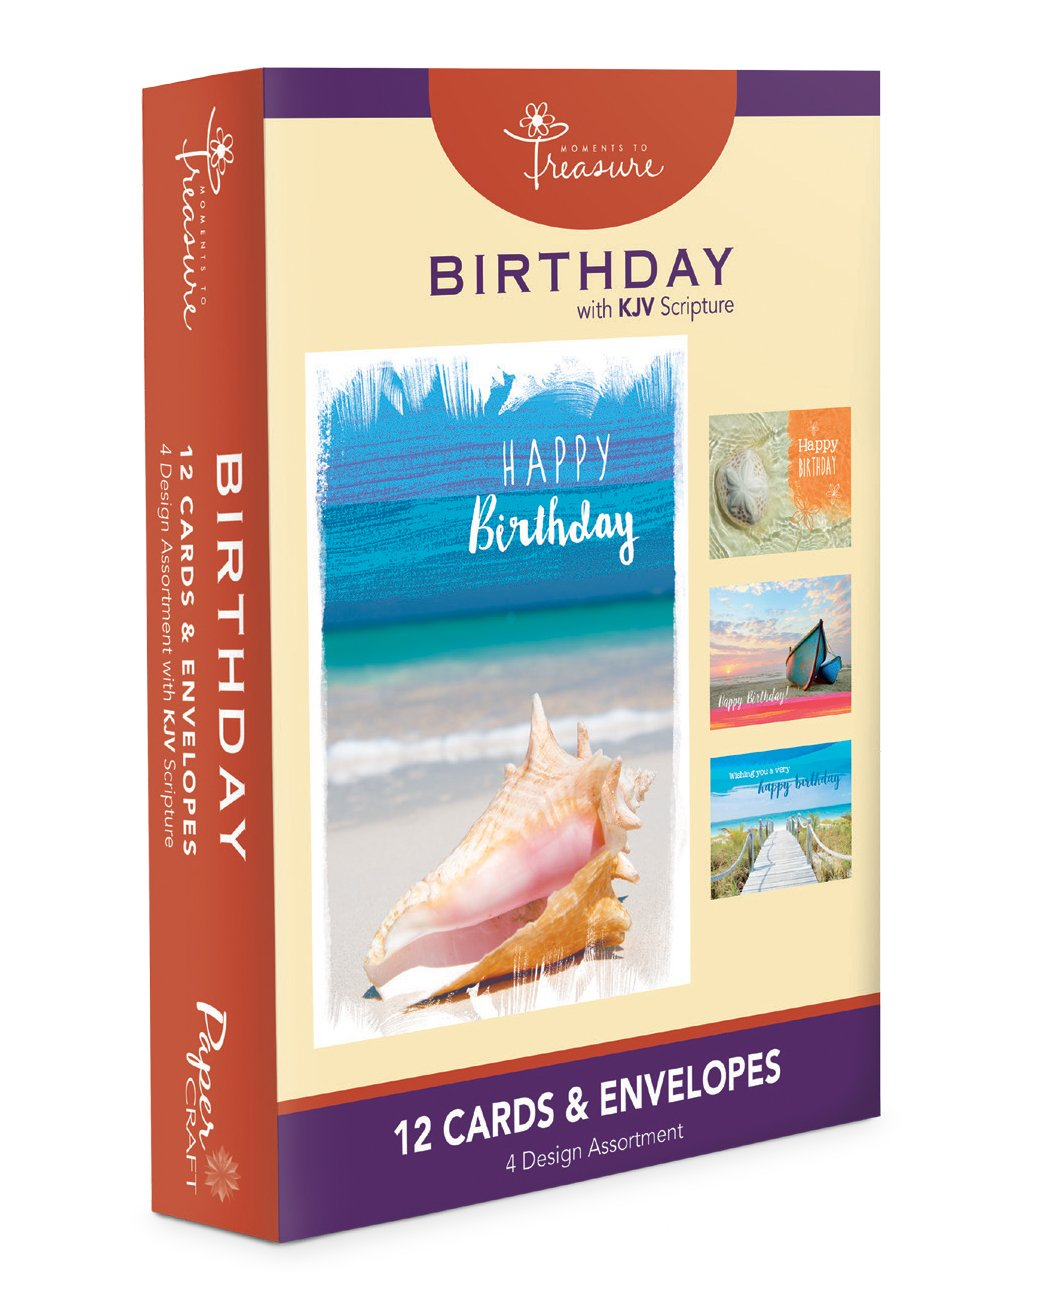 Amazon Assorted 12 Pack Religious Boxed Birthday Cards Bulk With KJV Scripture